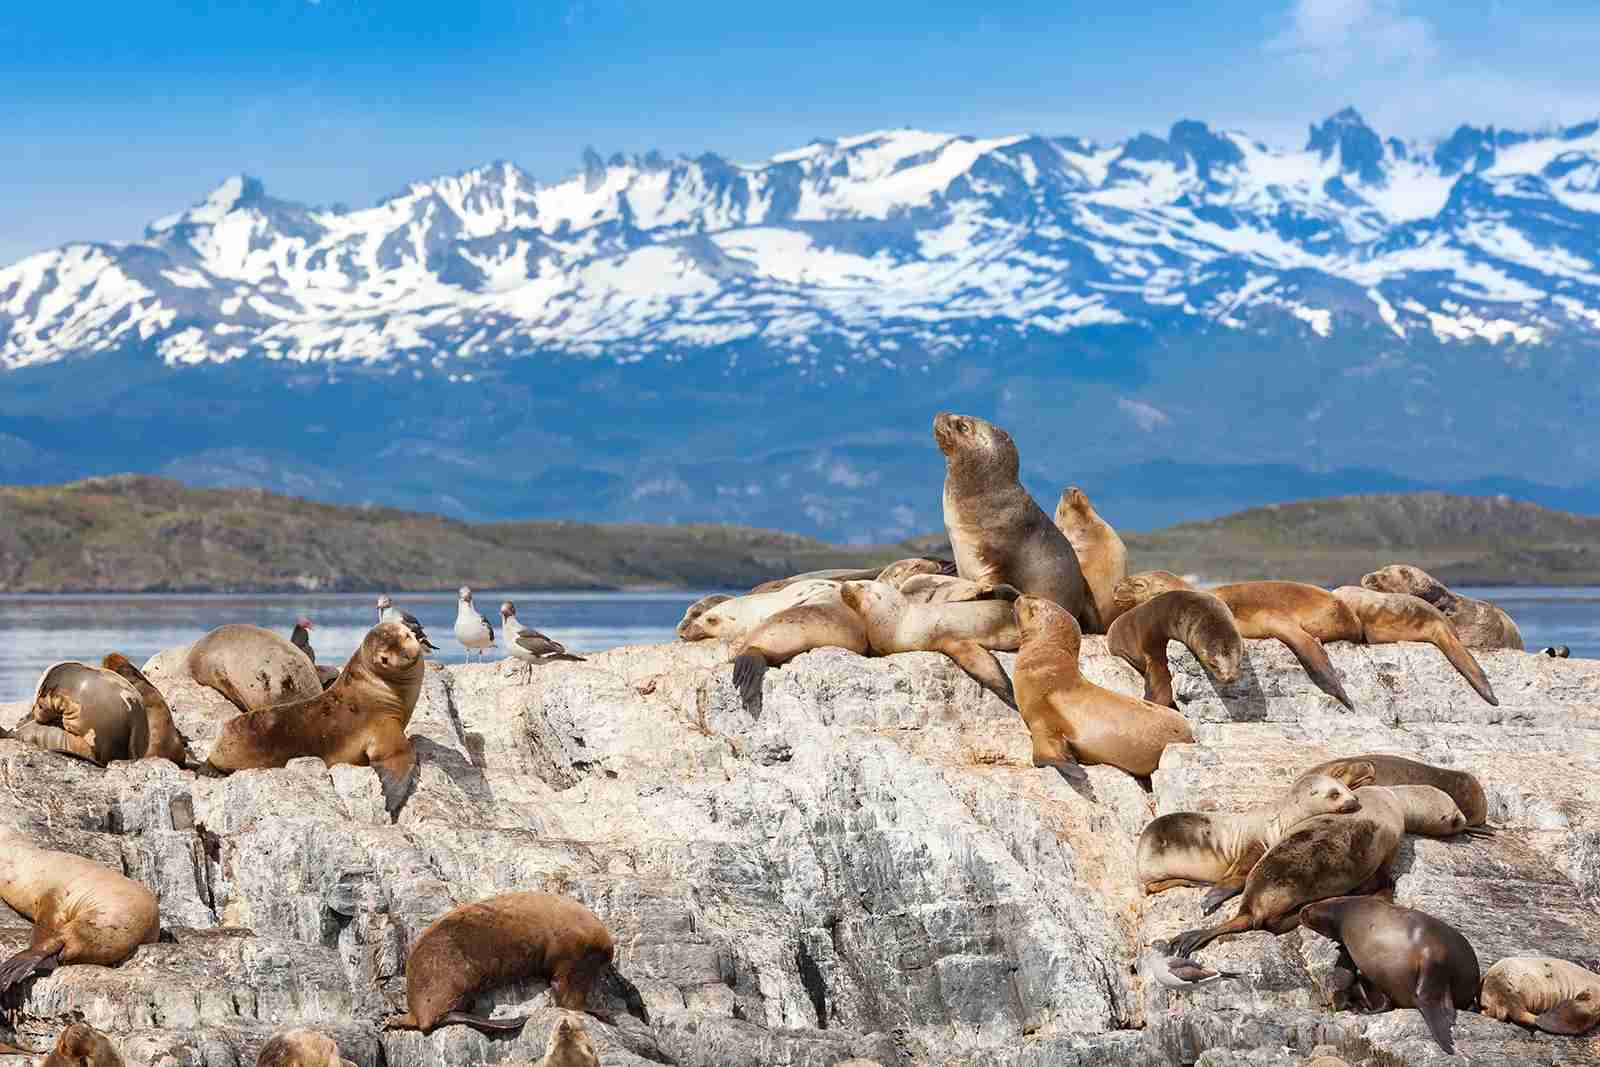 Sea lions are a part of the wildlife seen in Argentina. (Photo by Grafissimo/Getty Images)